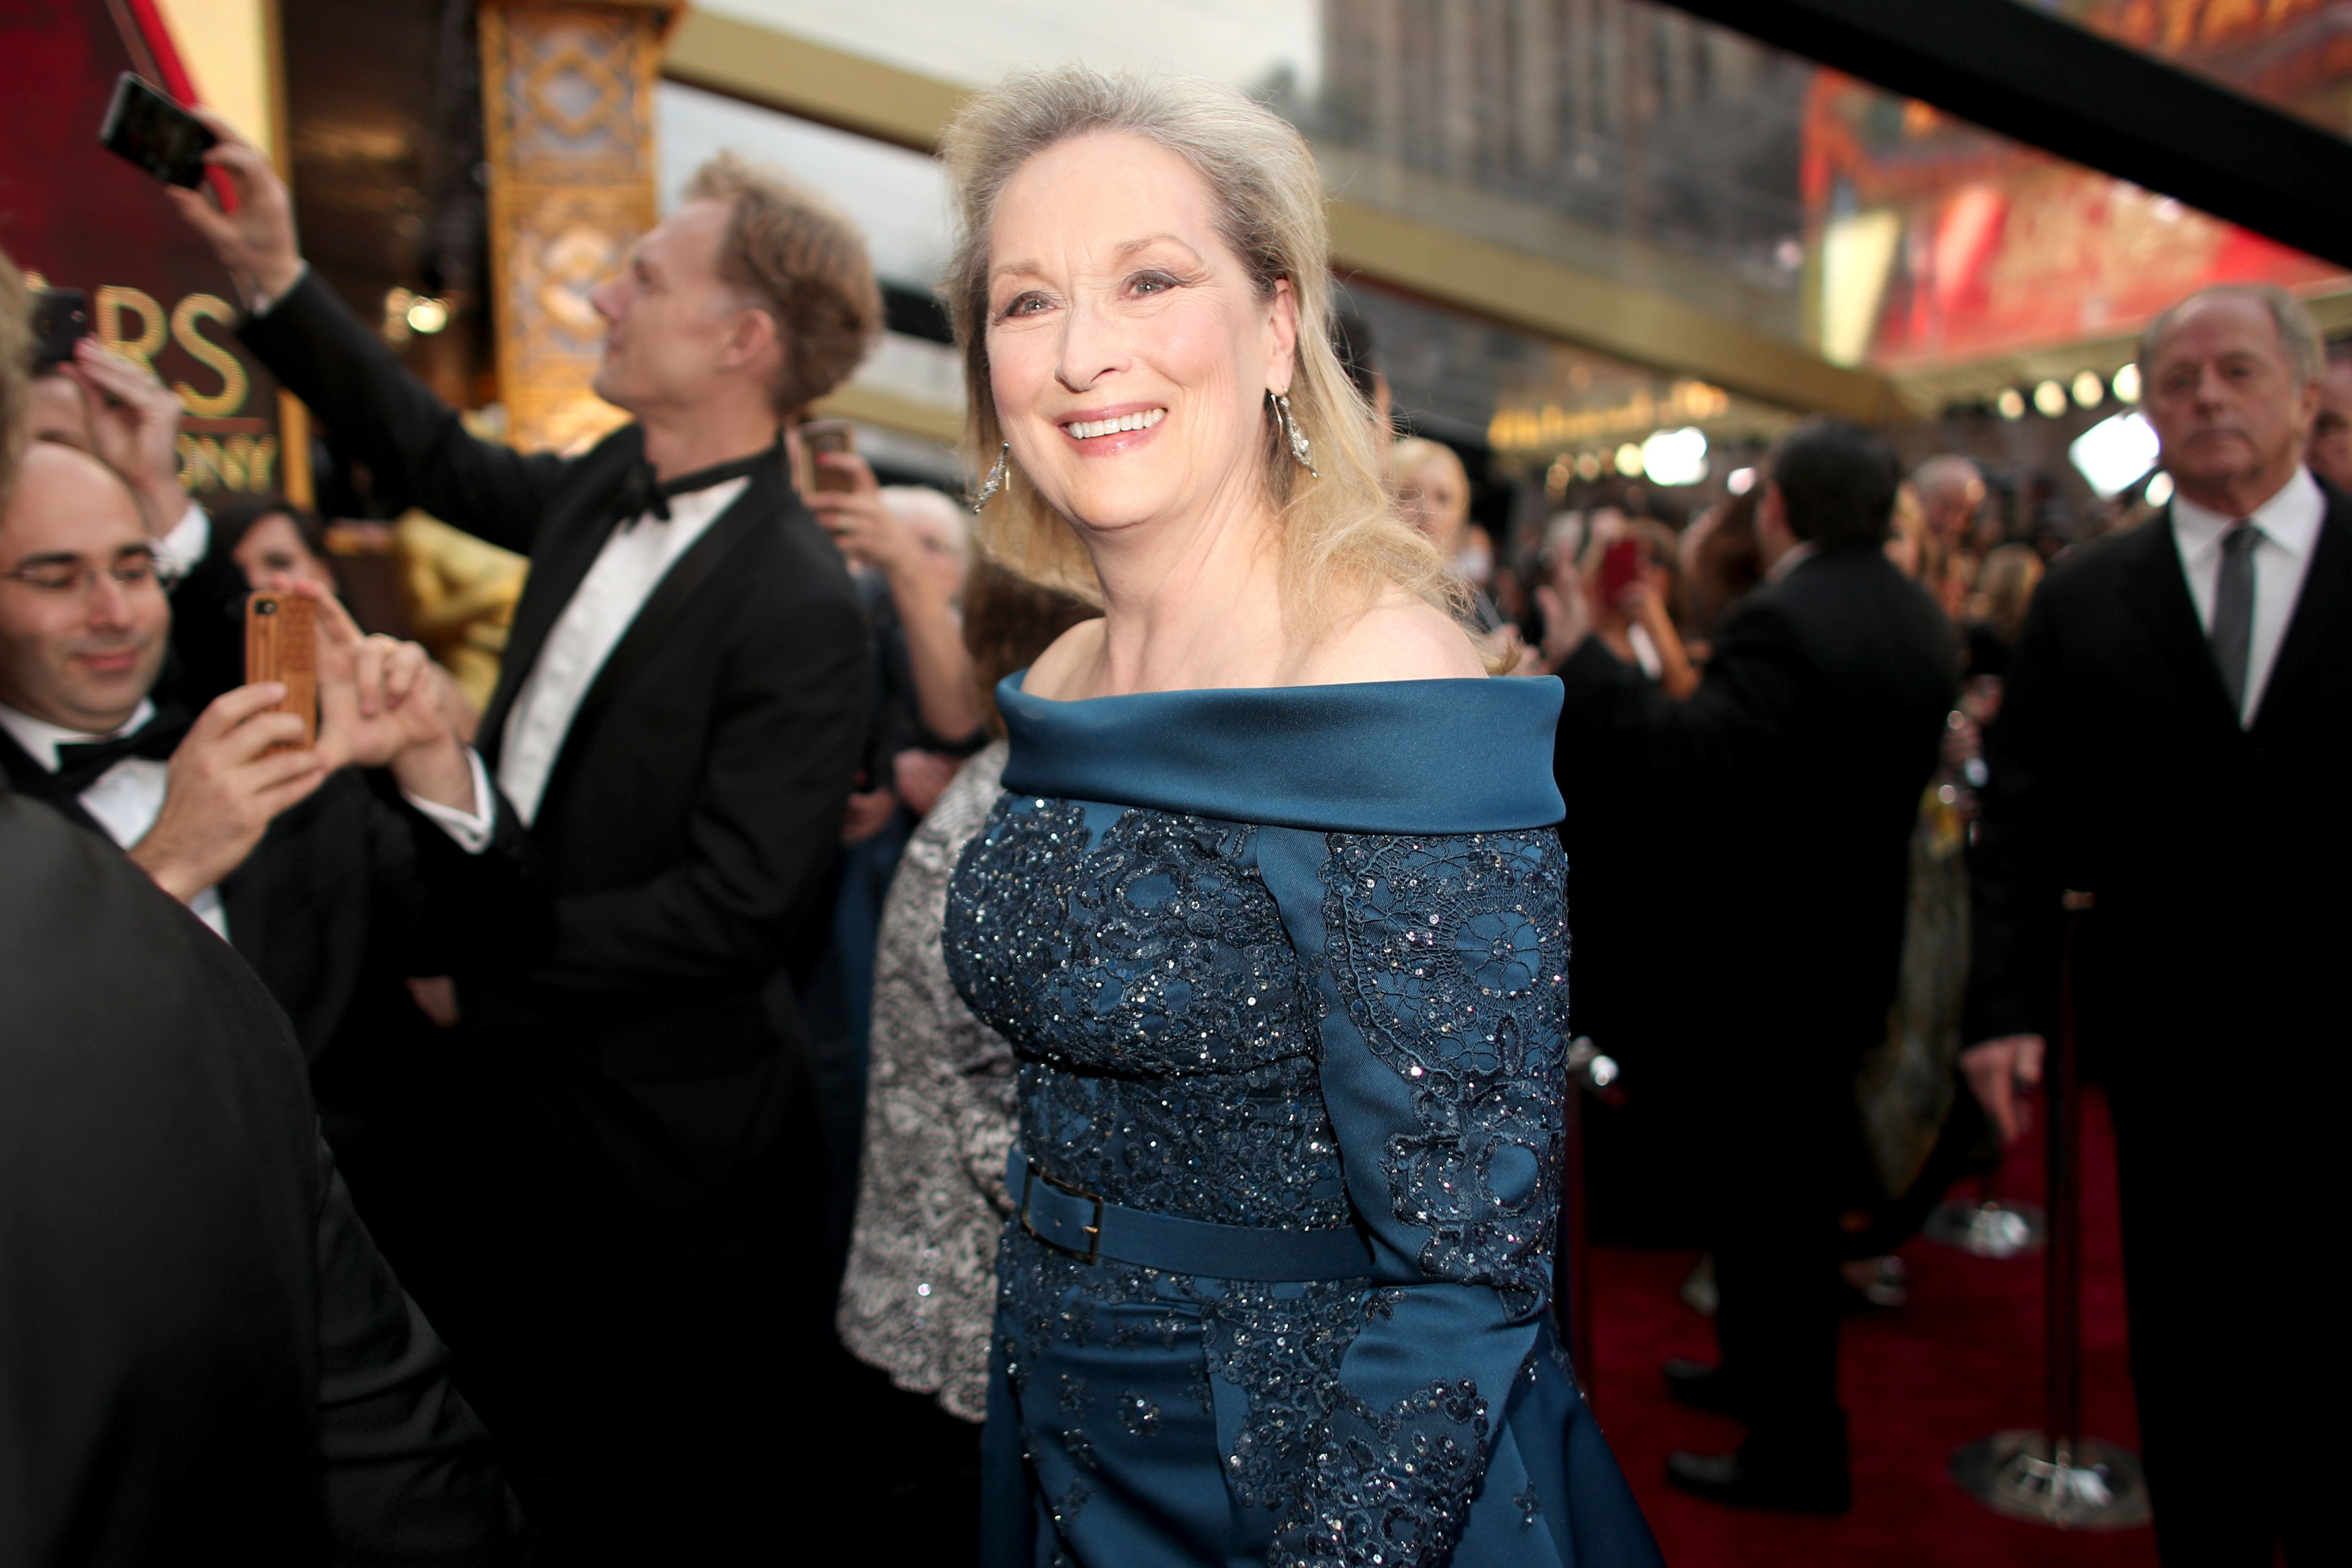 HOLLYWOOD, CA - FEBRUARY 26:  Actor Meryl Streep attends the 89th Annual Academy Awards at Hollywood & Highland Center on February 26, 2017 in Hollywood, California.  (Photo by Christopher Polk/Getty Images)